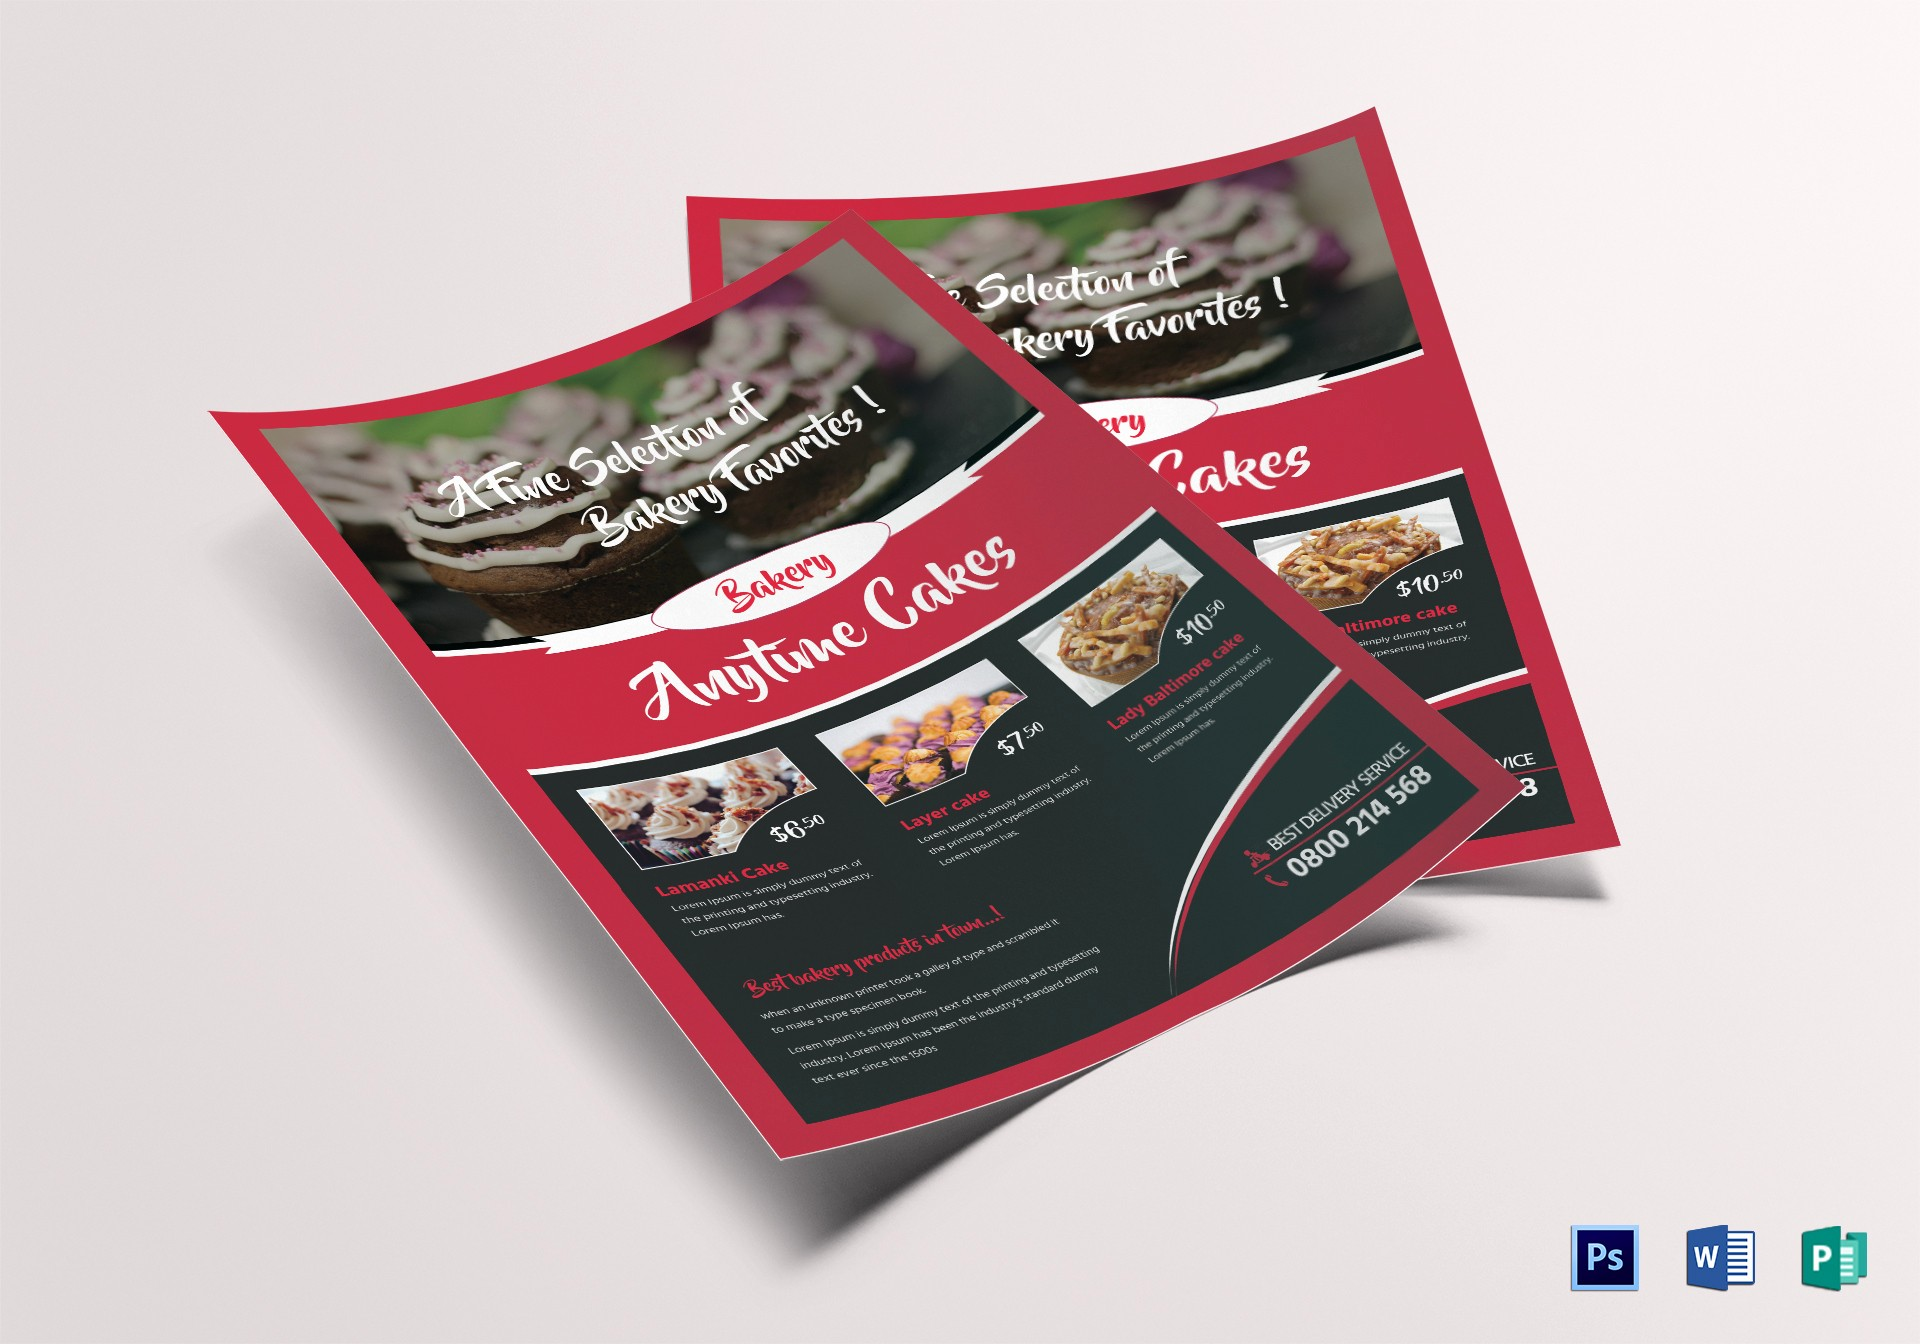 Bake Sale Flyer Template Word Lovely Customizable Bake Sale Flyer Design Template In Psd Word